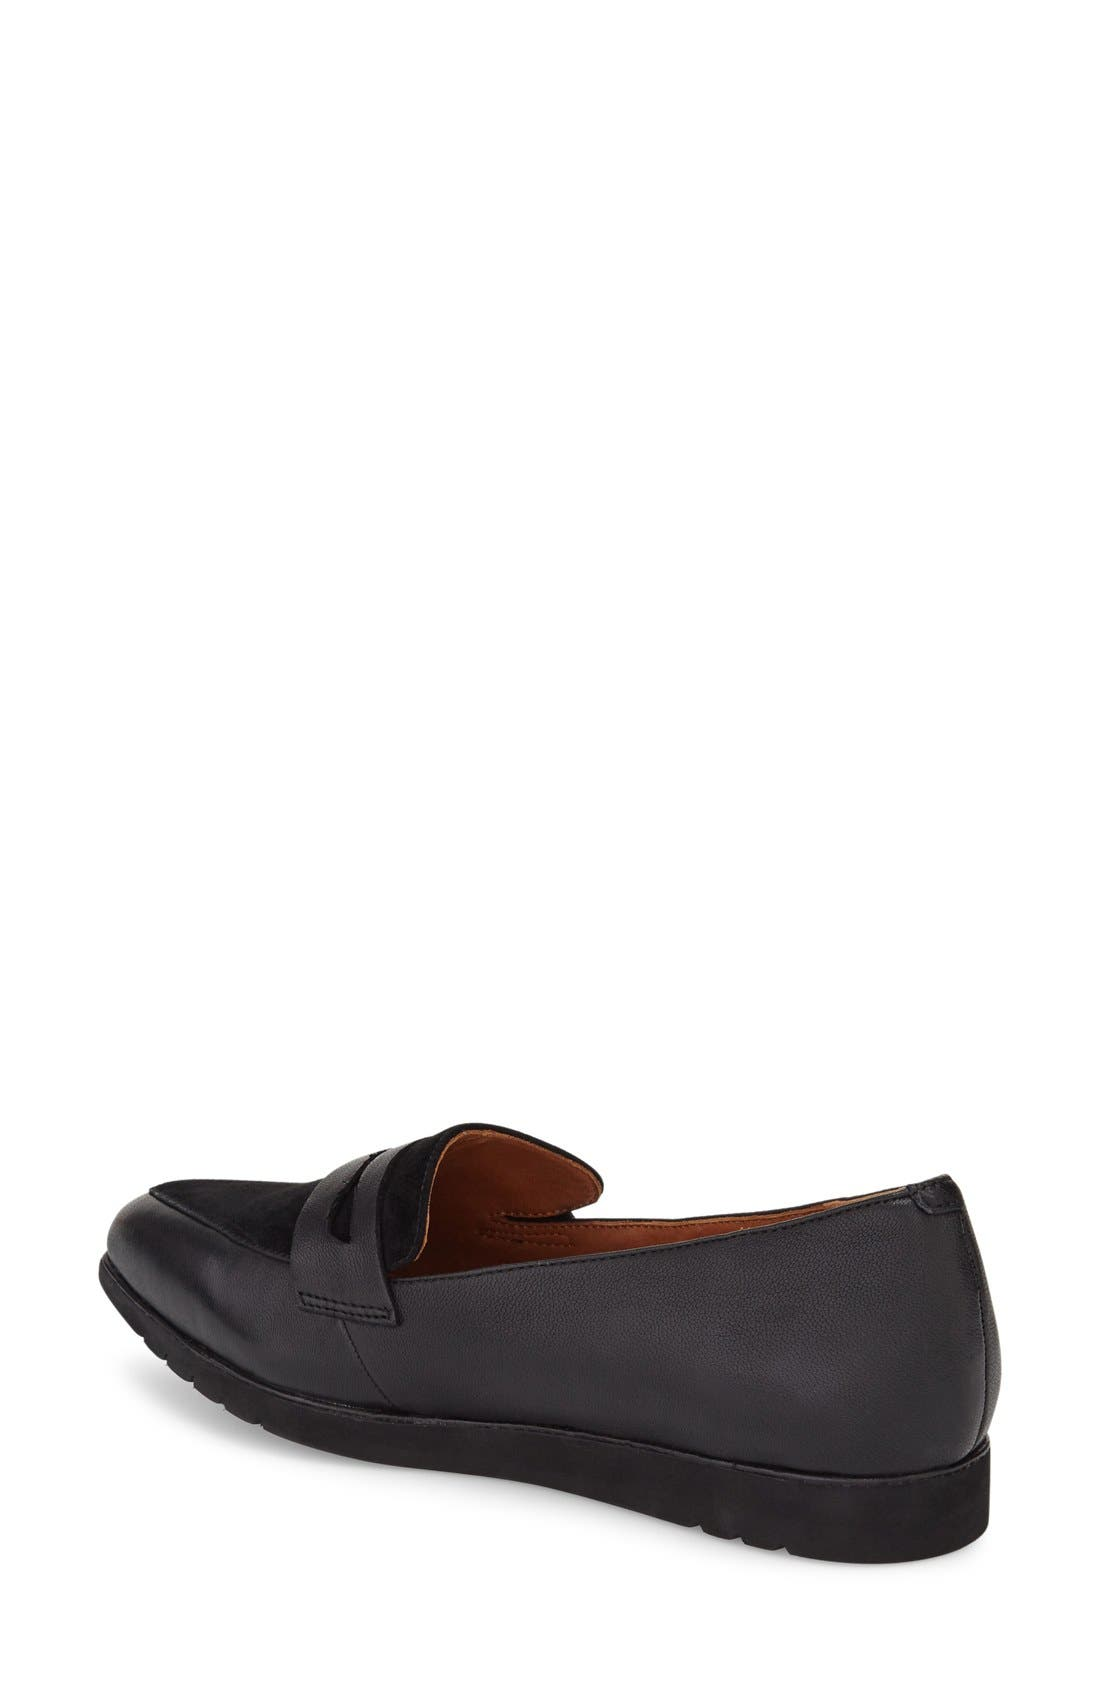 Alternate Image 2  - L'Amour des Pieds 'Miamore' Pointy Toe Loafer (Women)